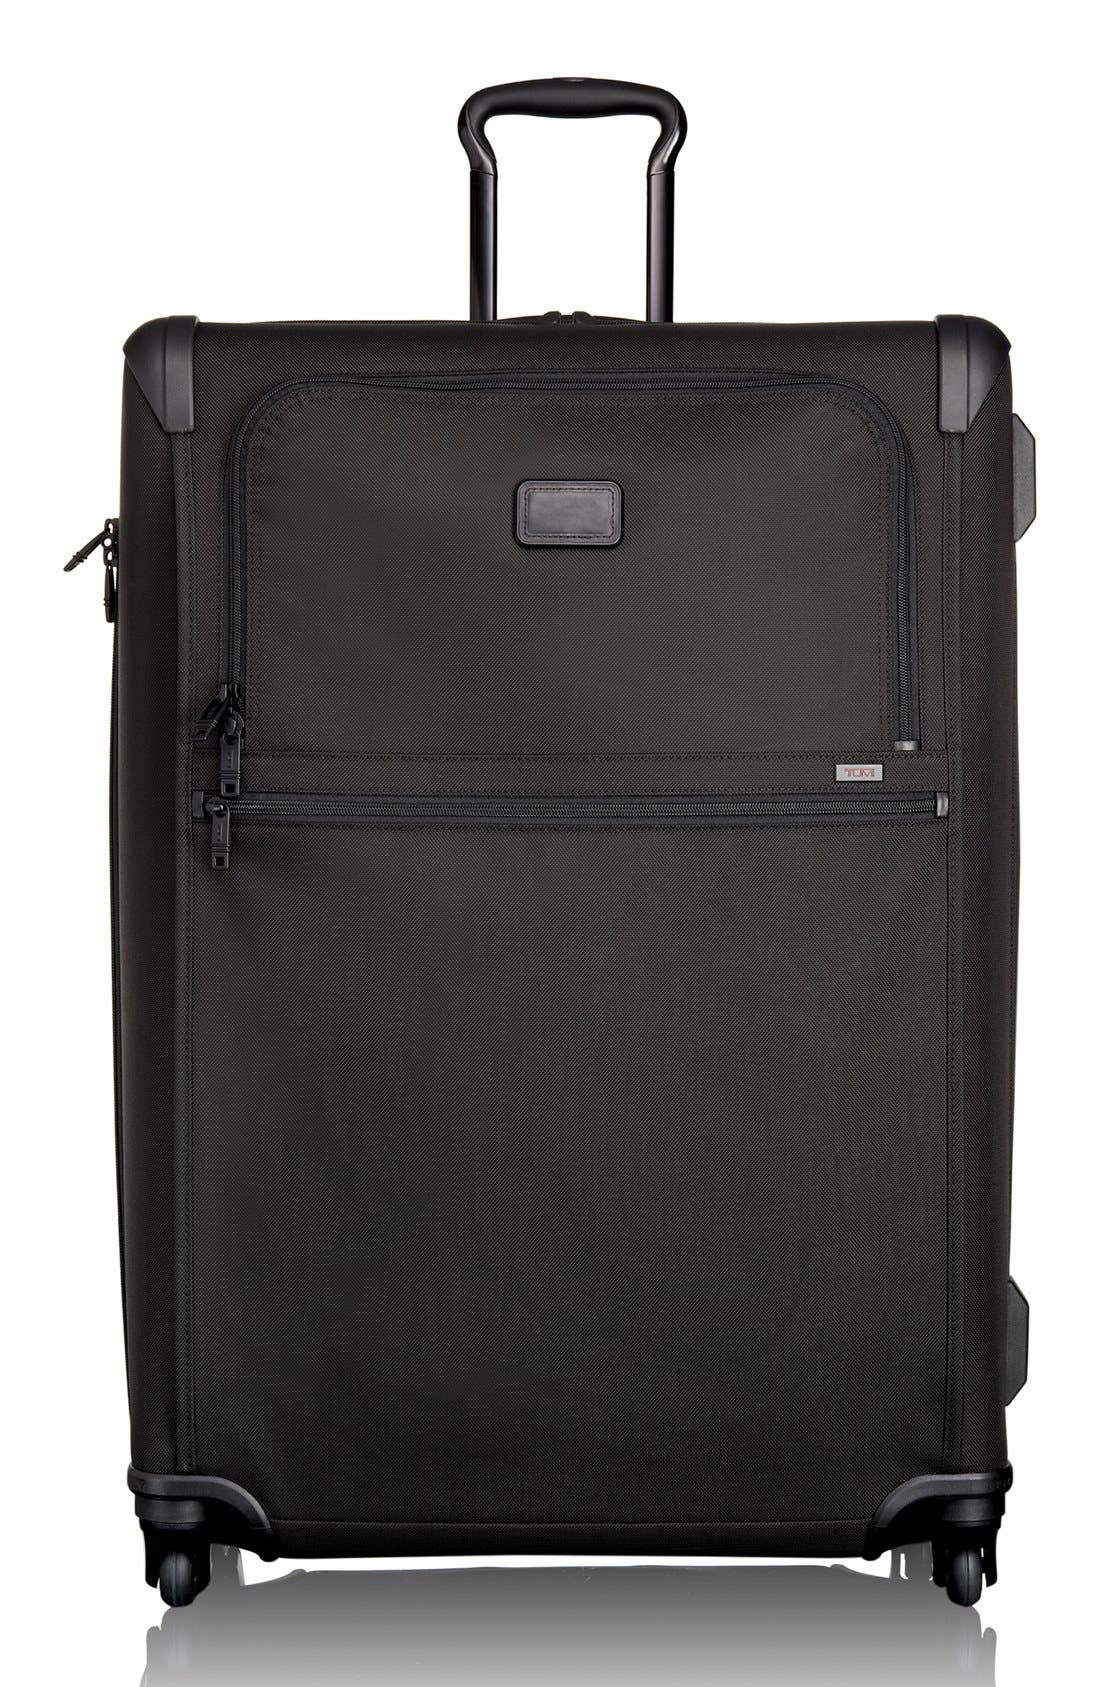 Tumi 'Alpha 2' Extended Trip Packing Case (31 Inch)